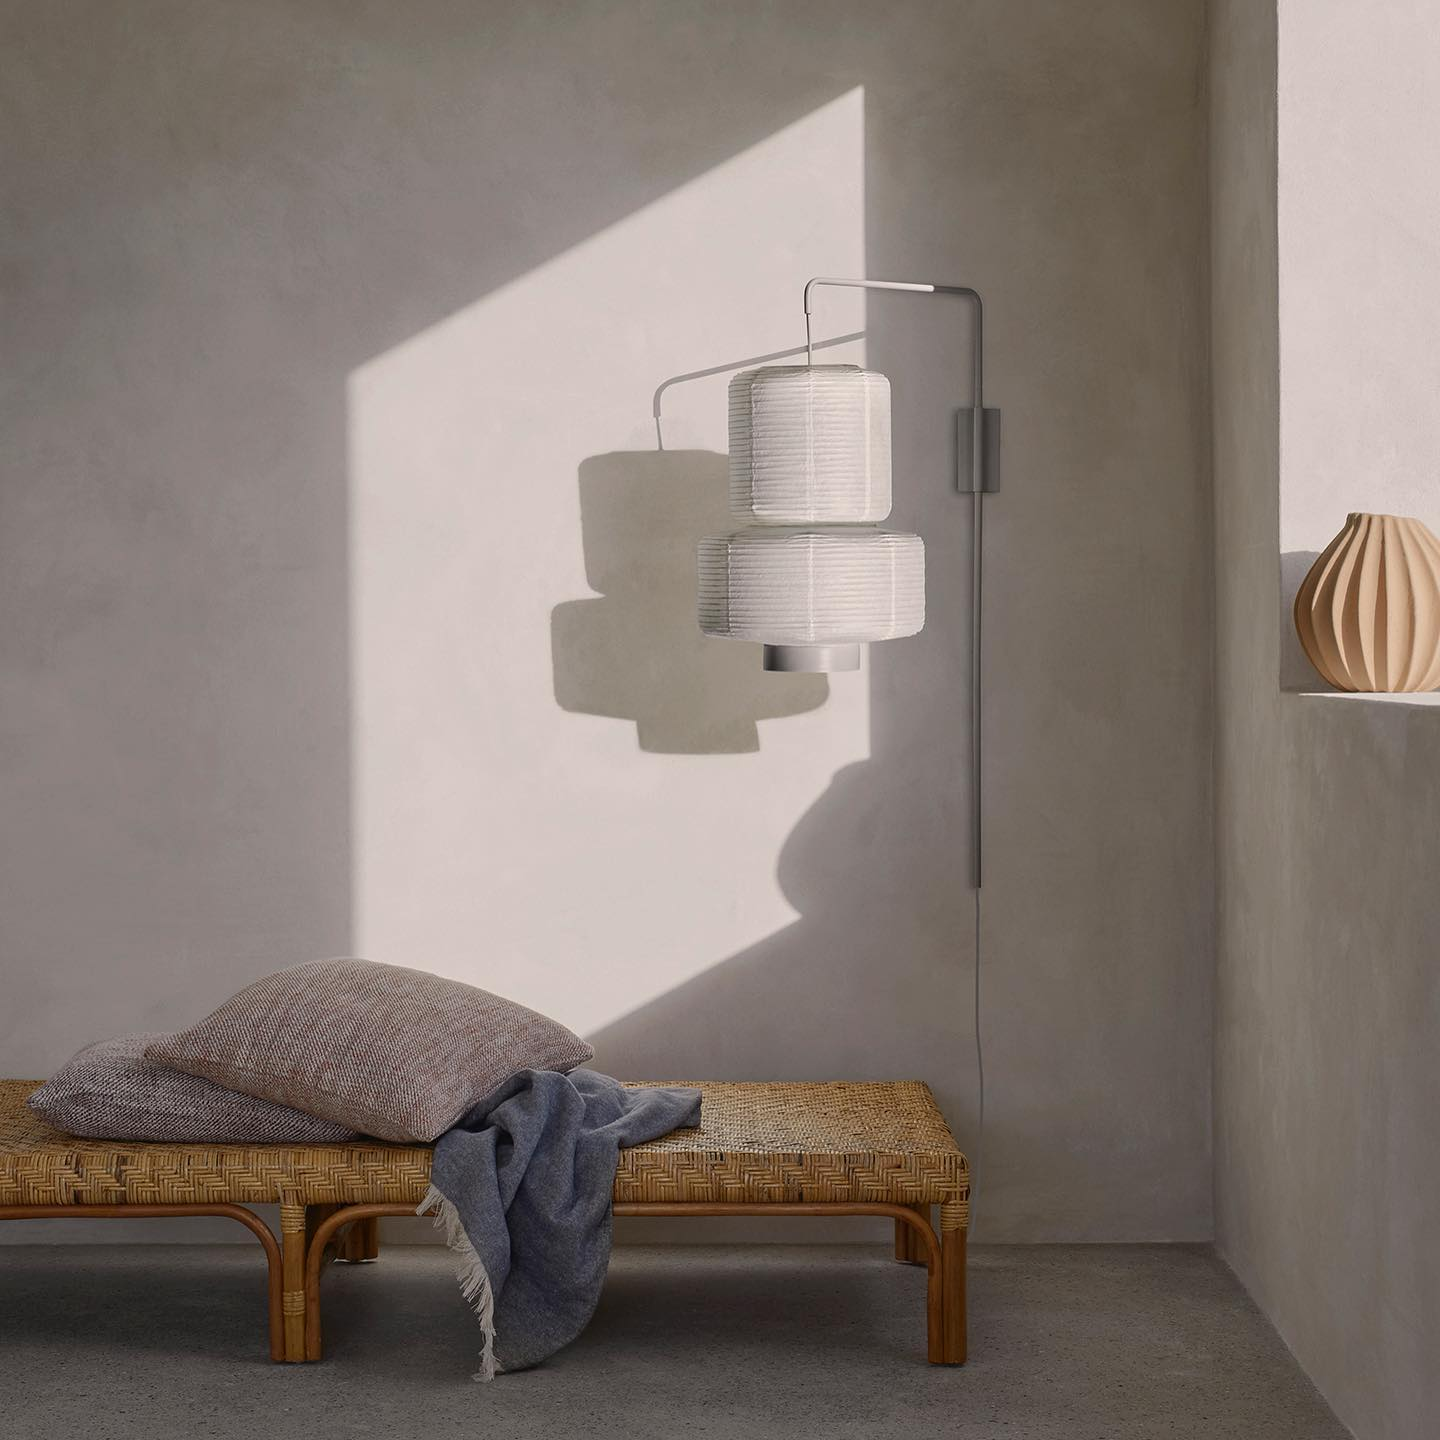 The WILLIAM lamps will cast a soft light through its' see-through rice paper. A simple yet functional design that provides serenity and balance in the interior. A new table lamp now available. . . #ricepaperlamp #lampshades #tablelamps #lighting